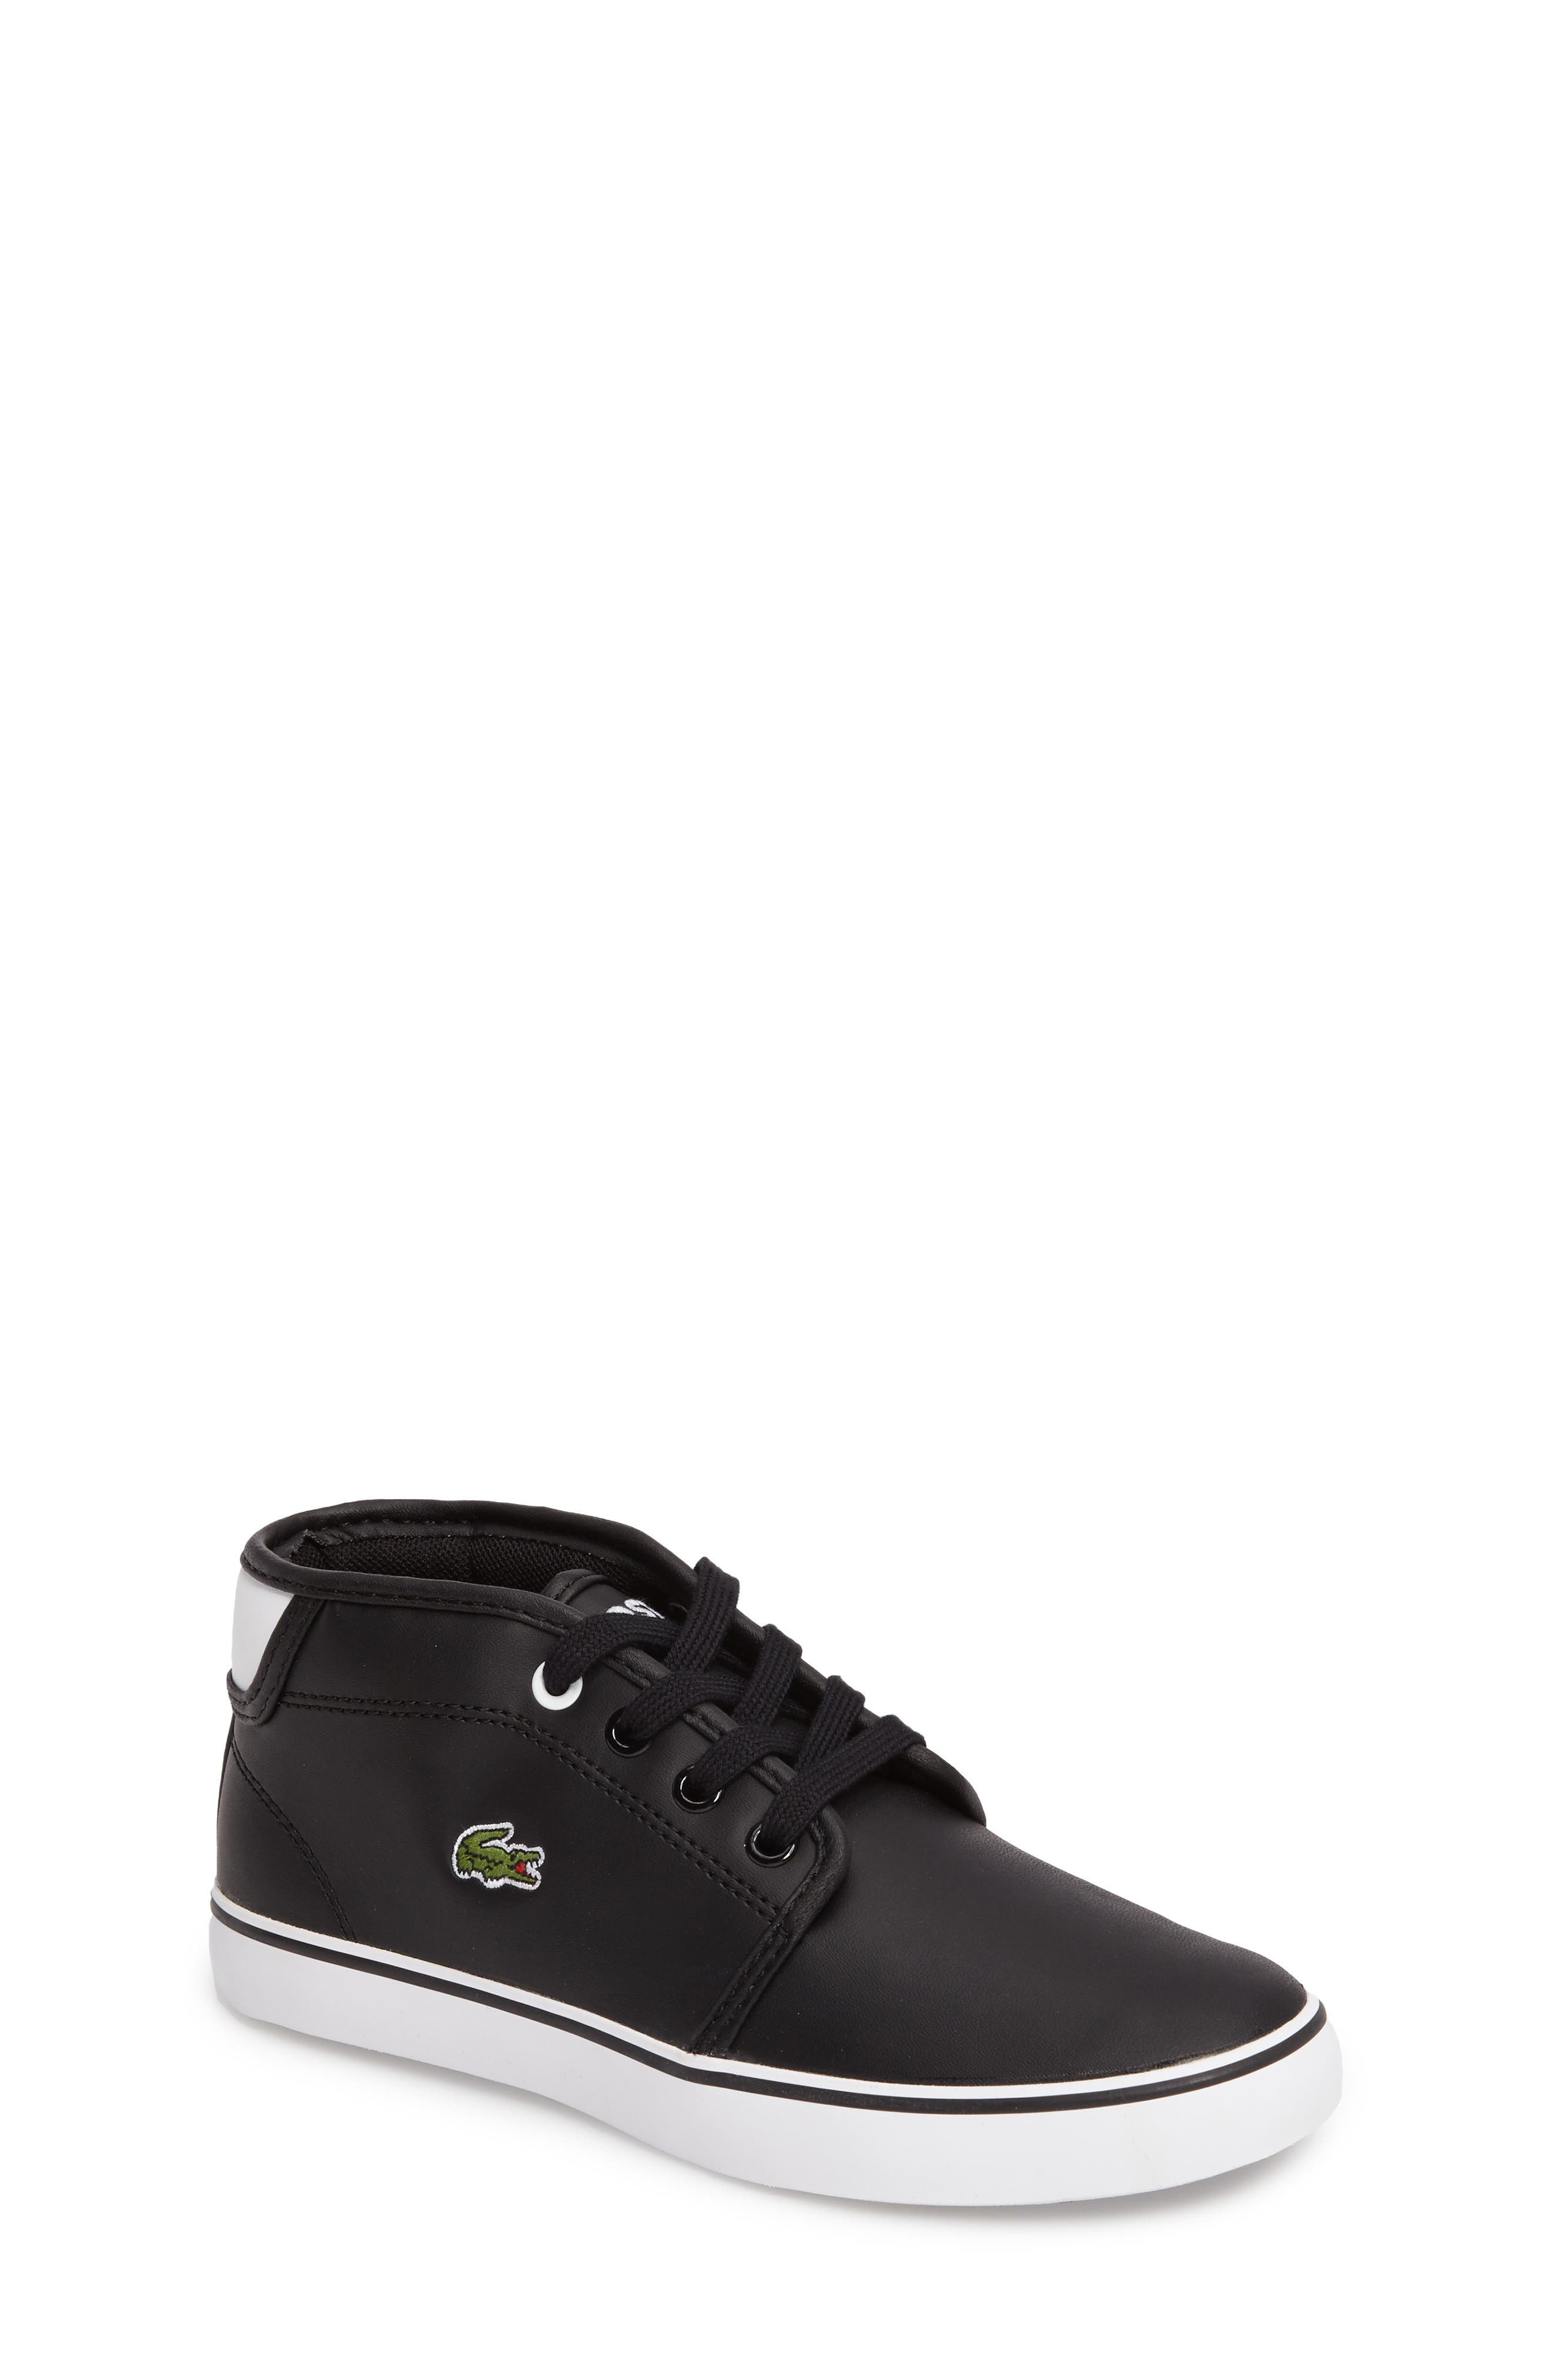 Ampthill High Top Sneaker,                             Main thumbnail 1, color,